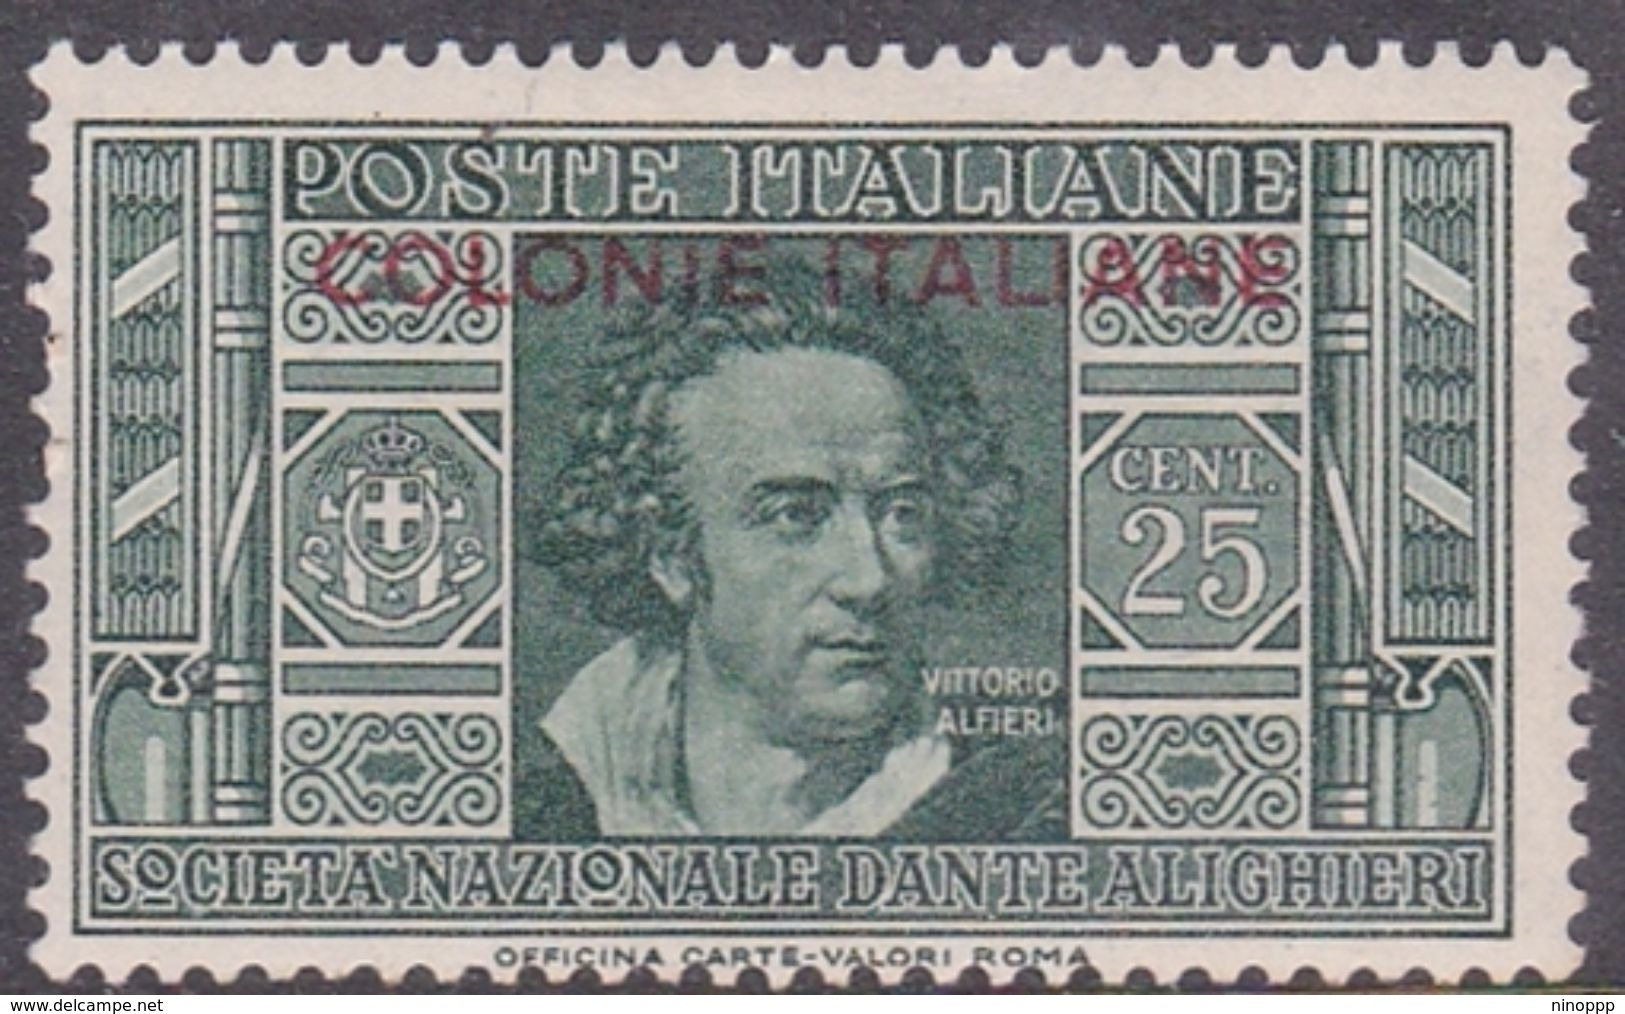 Italy-Colonies And Territories-General Issue S14 1932 Dante Alighieri 25c Green MH - Italy